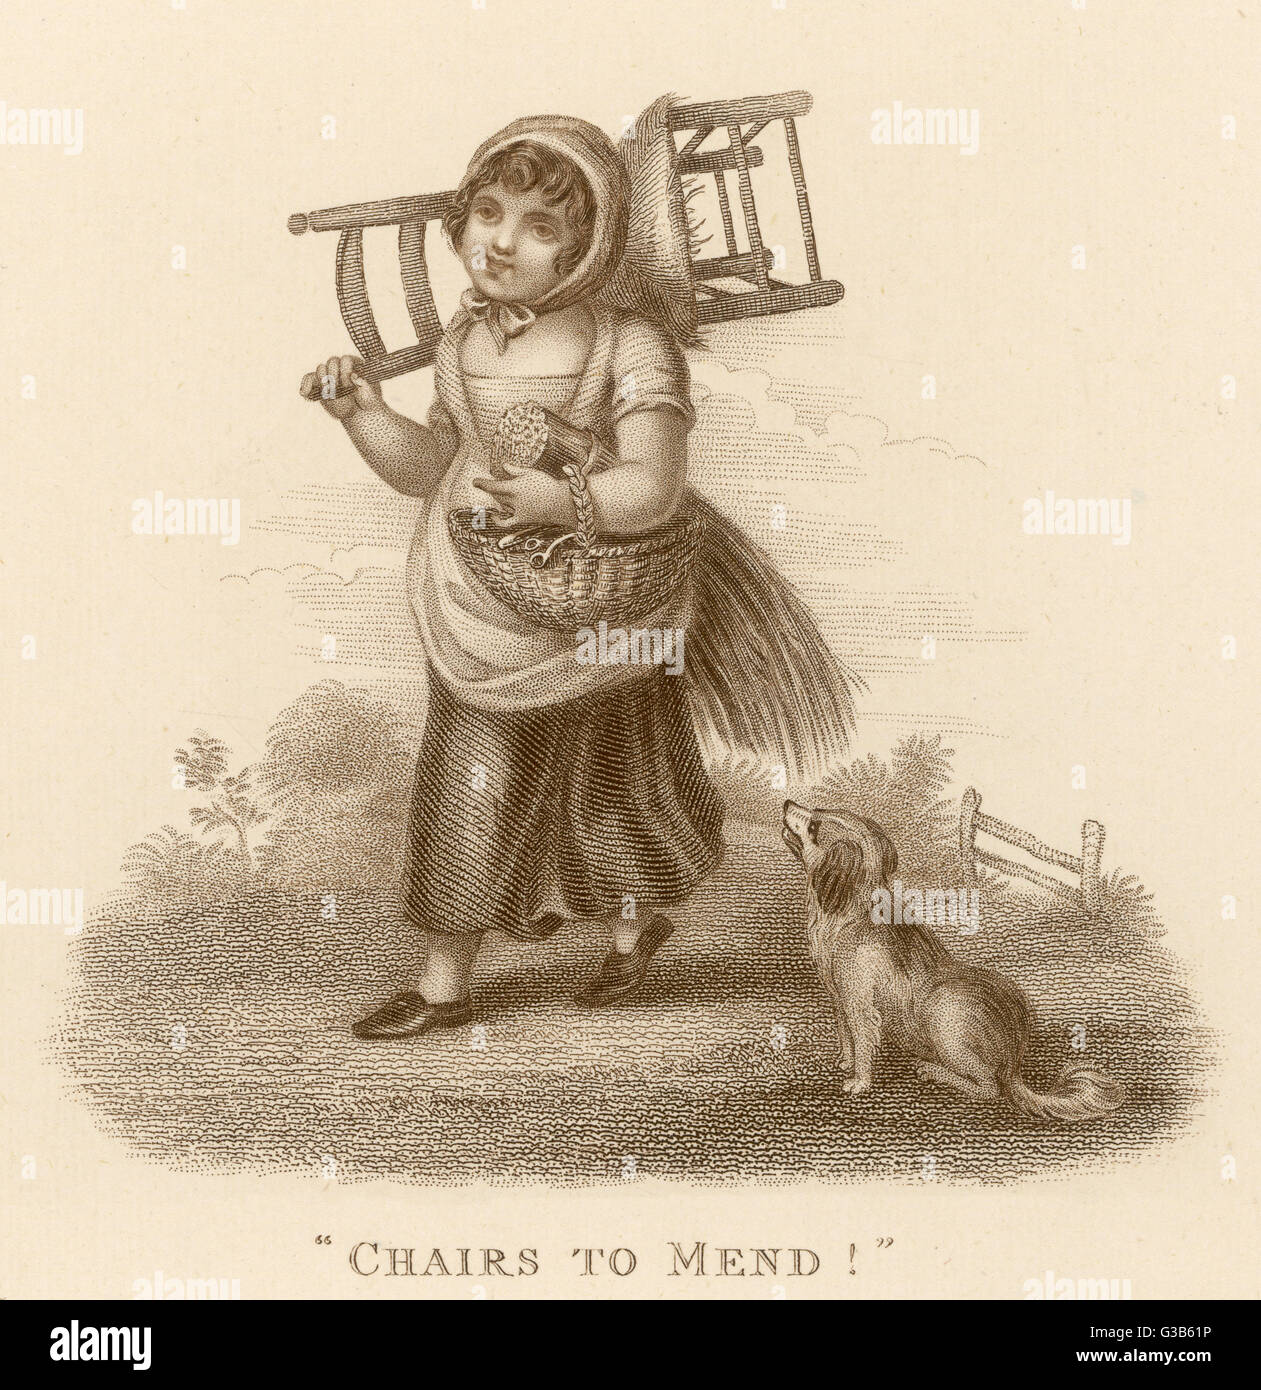 A girl with basket of reeds  and a chair over one shoulder  cries 'chairs to mend!'       Date: 1812 - Stock Image